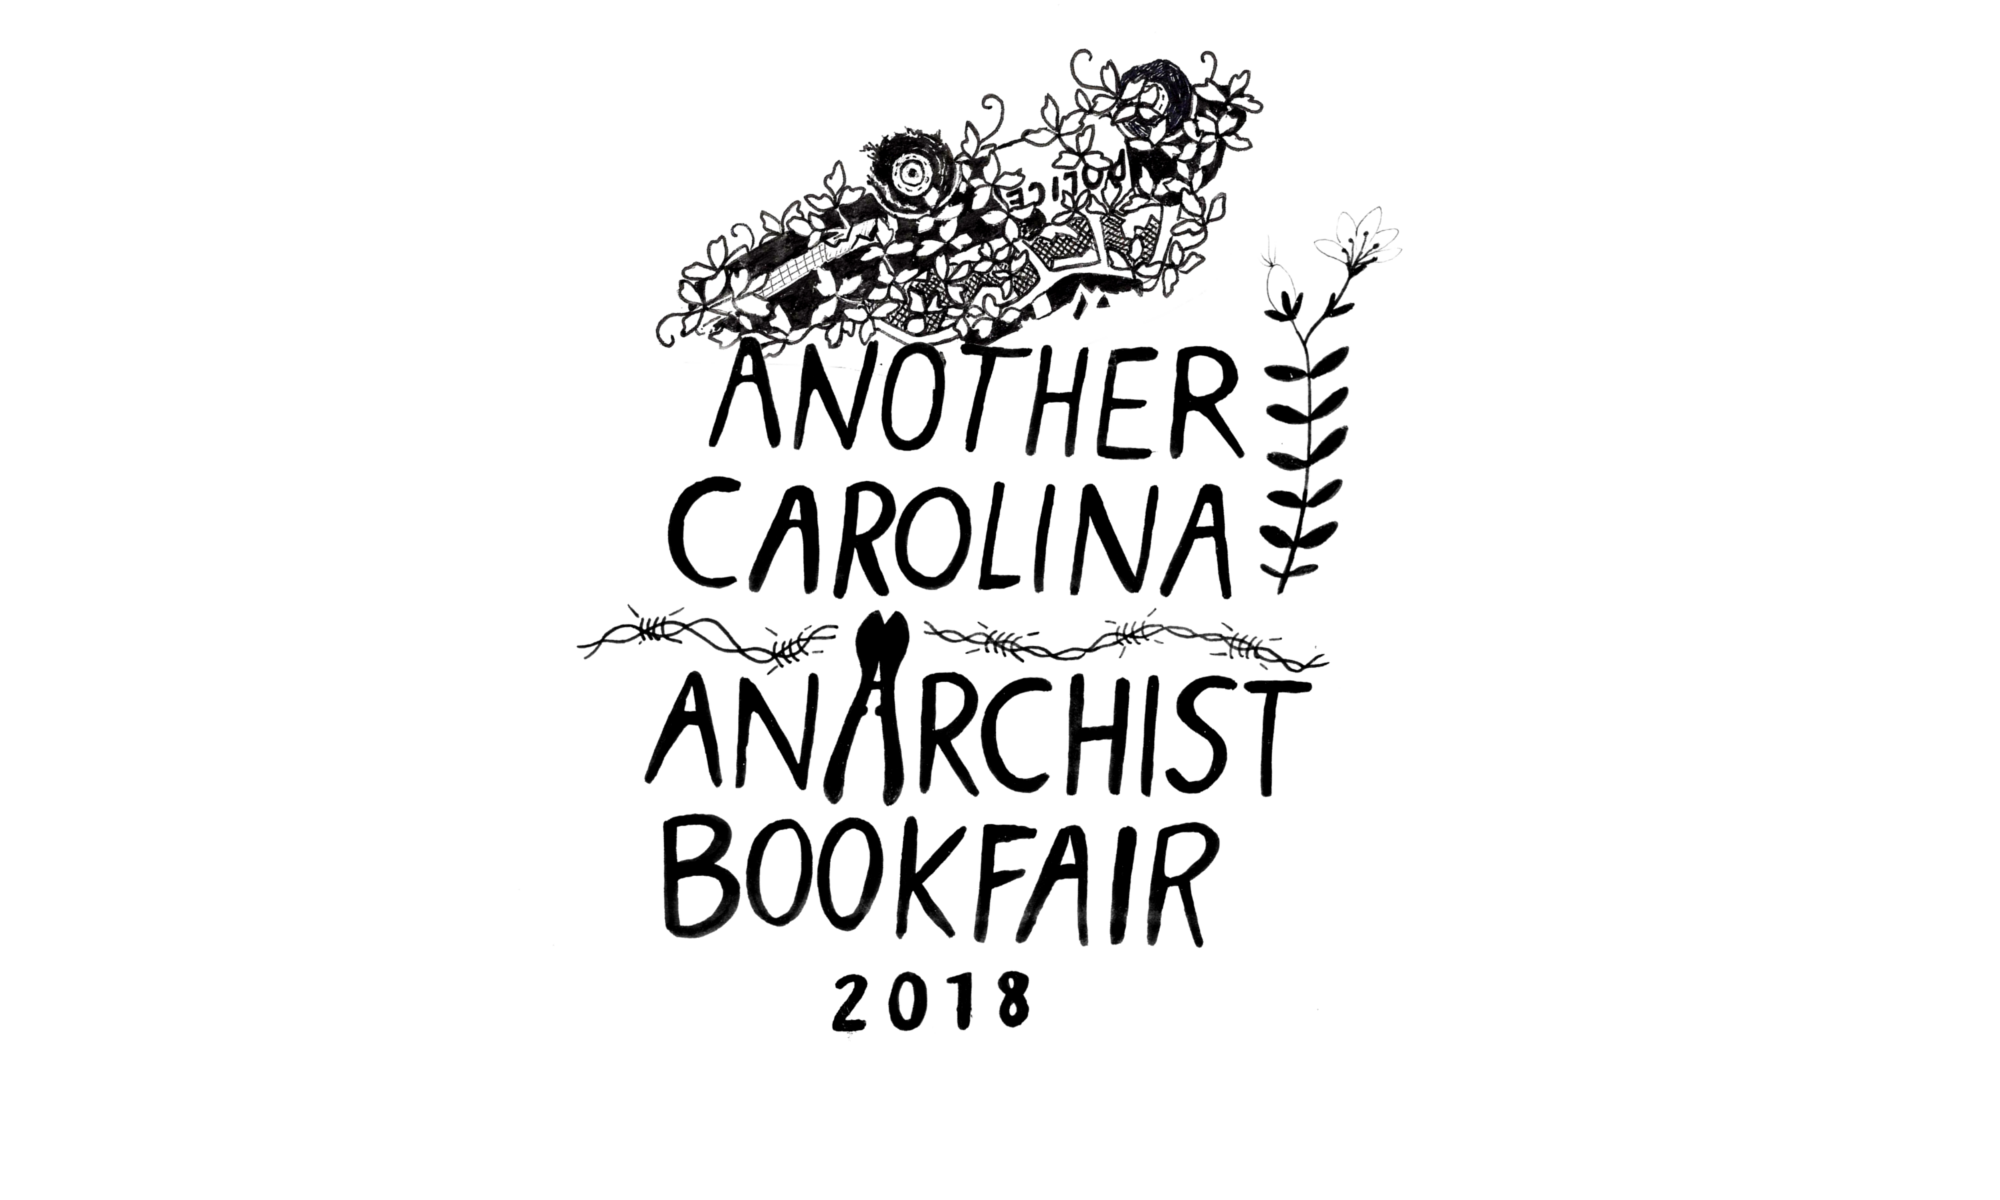 Another Carolina Anarchist Bookfair June 22-24 2018